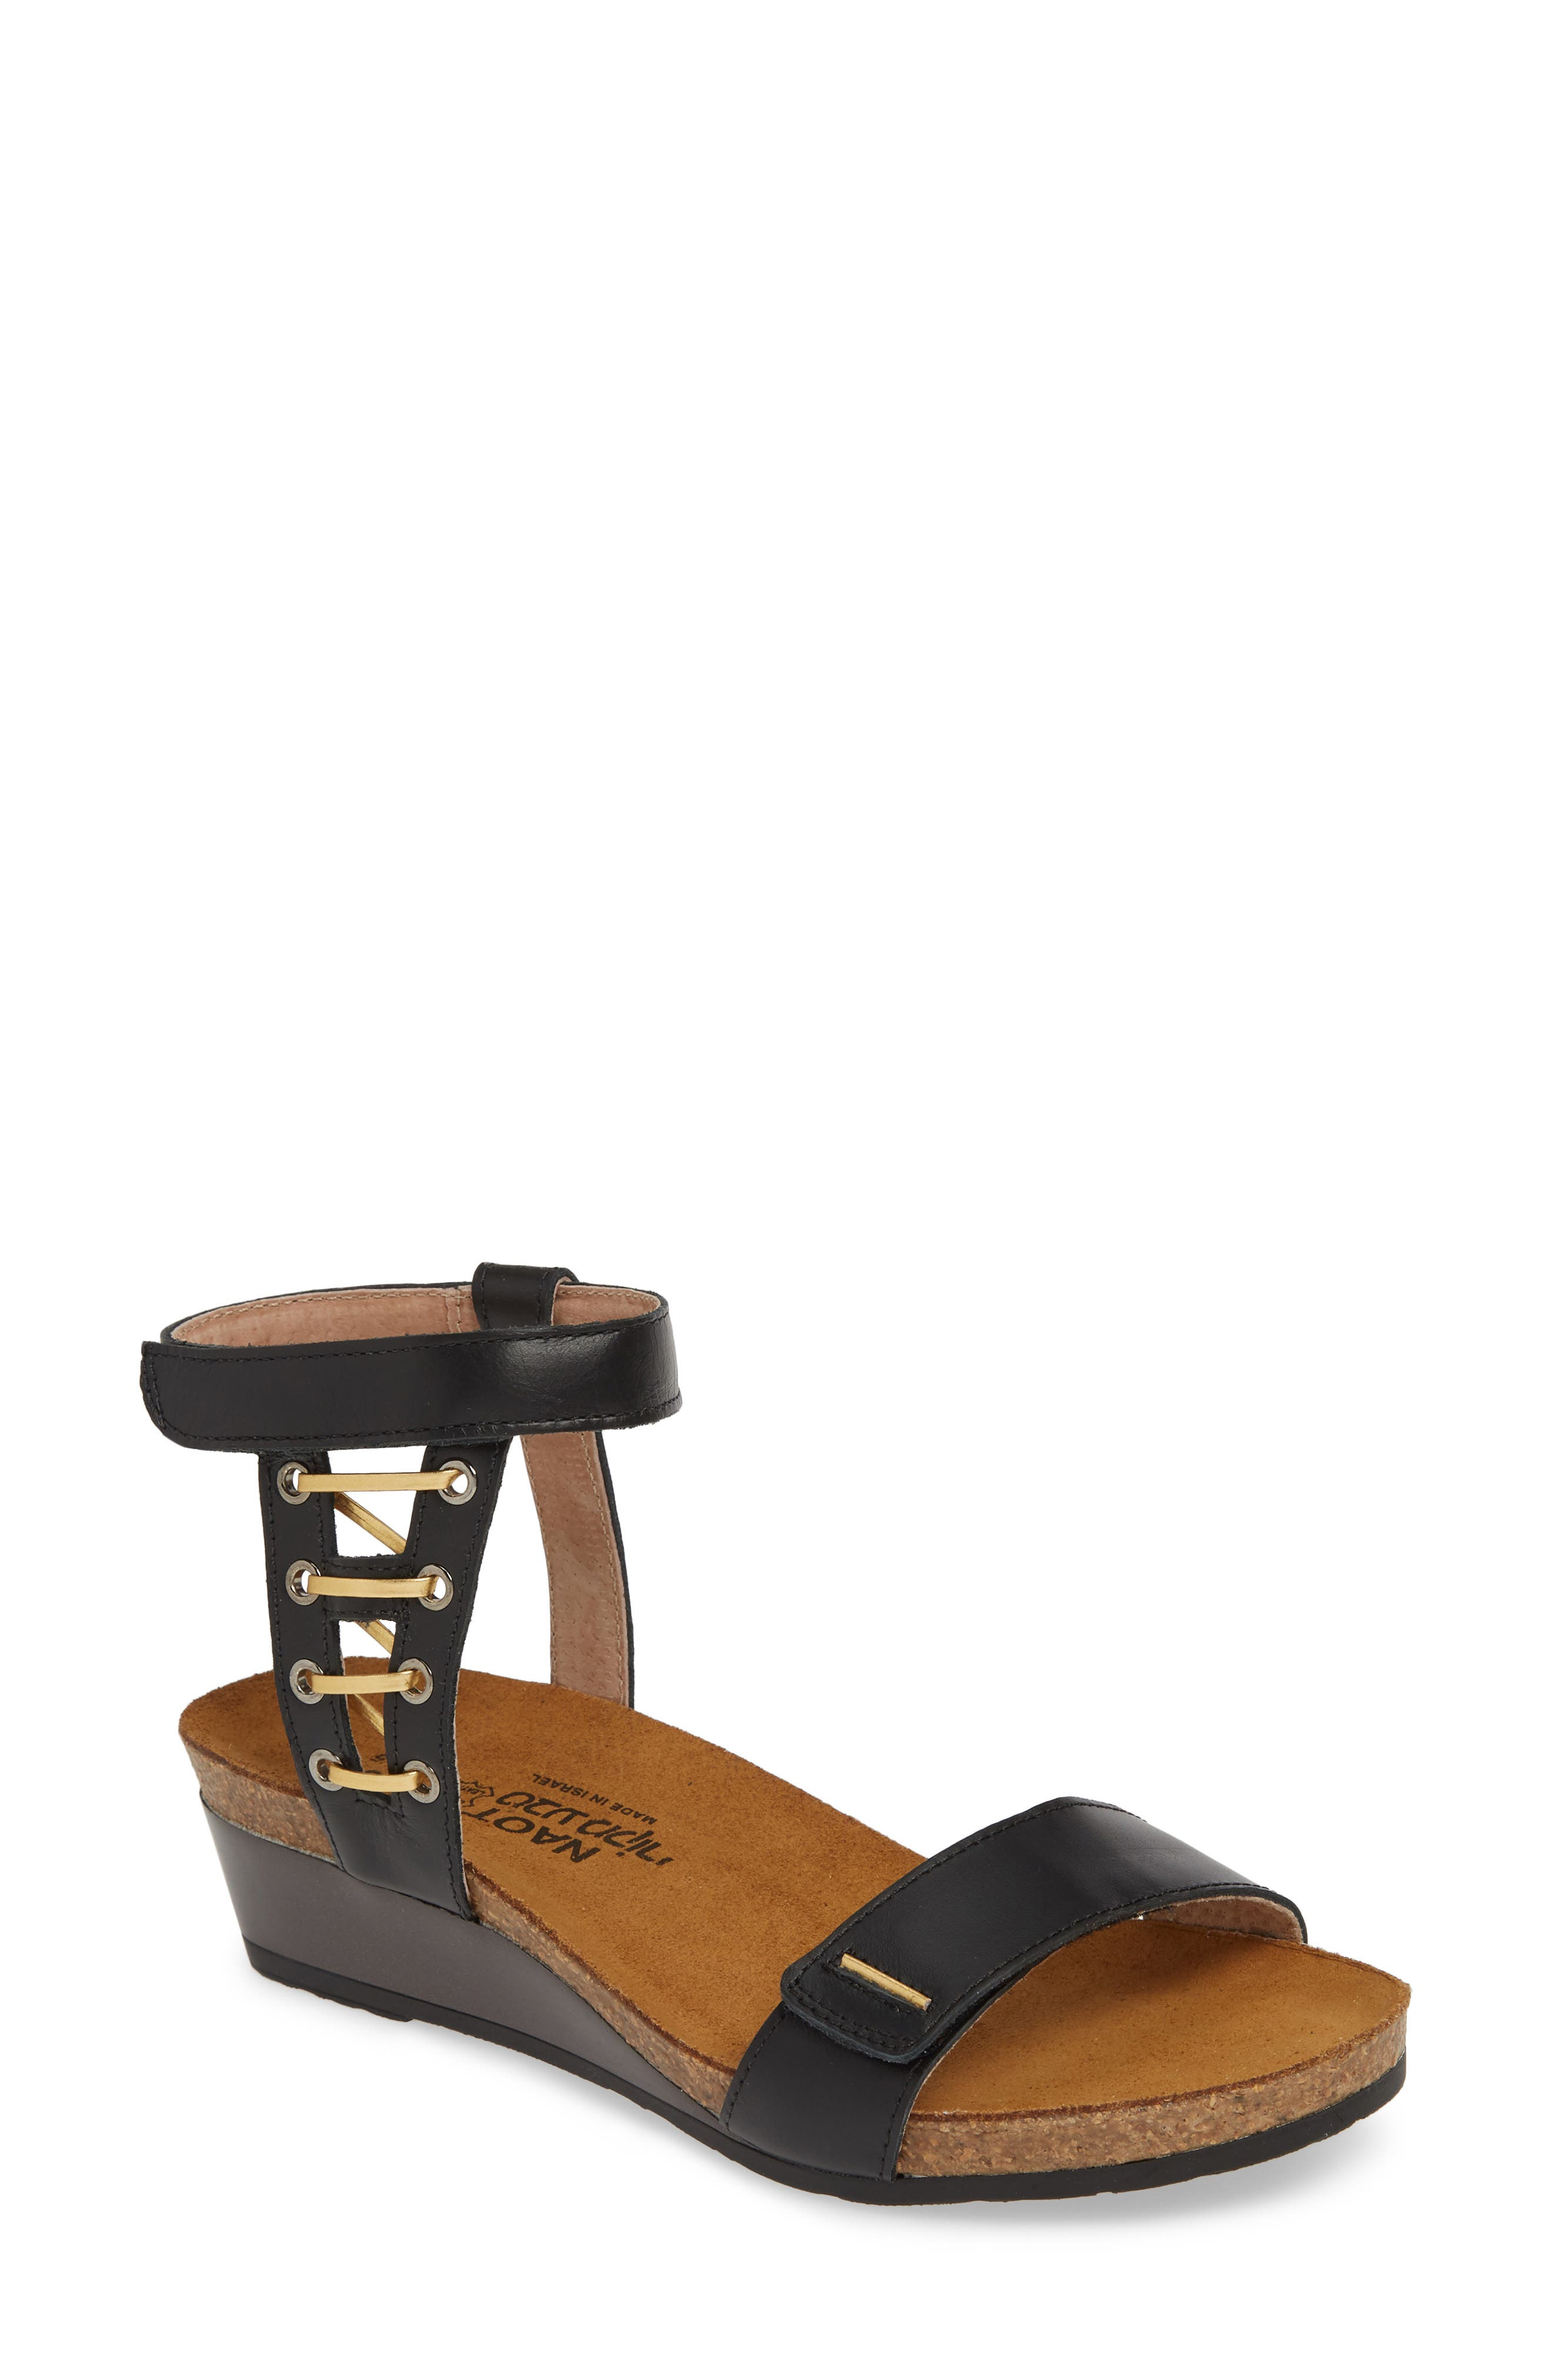 NAOT, Wizard Sandal, Main thumbnail 1, color, BLACK RAVEN/ GOLD